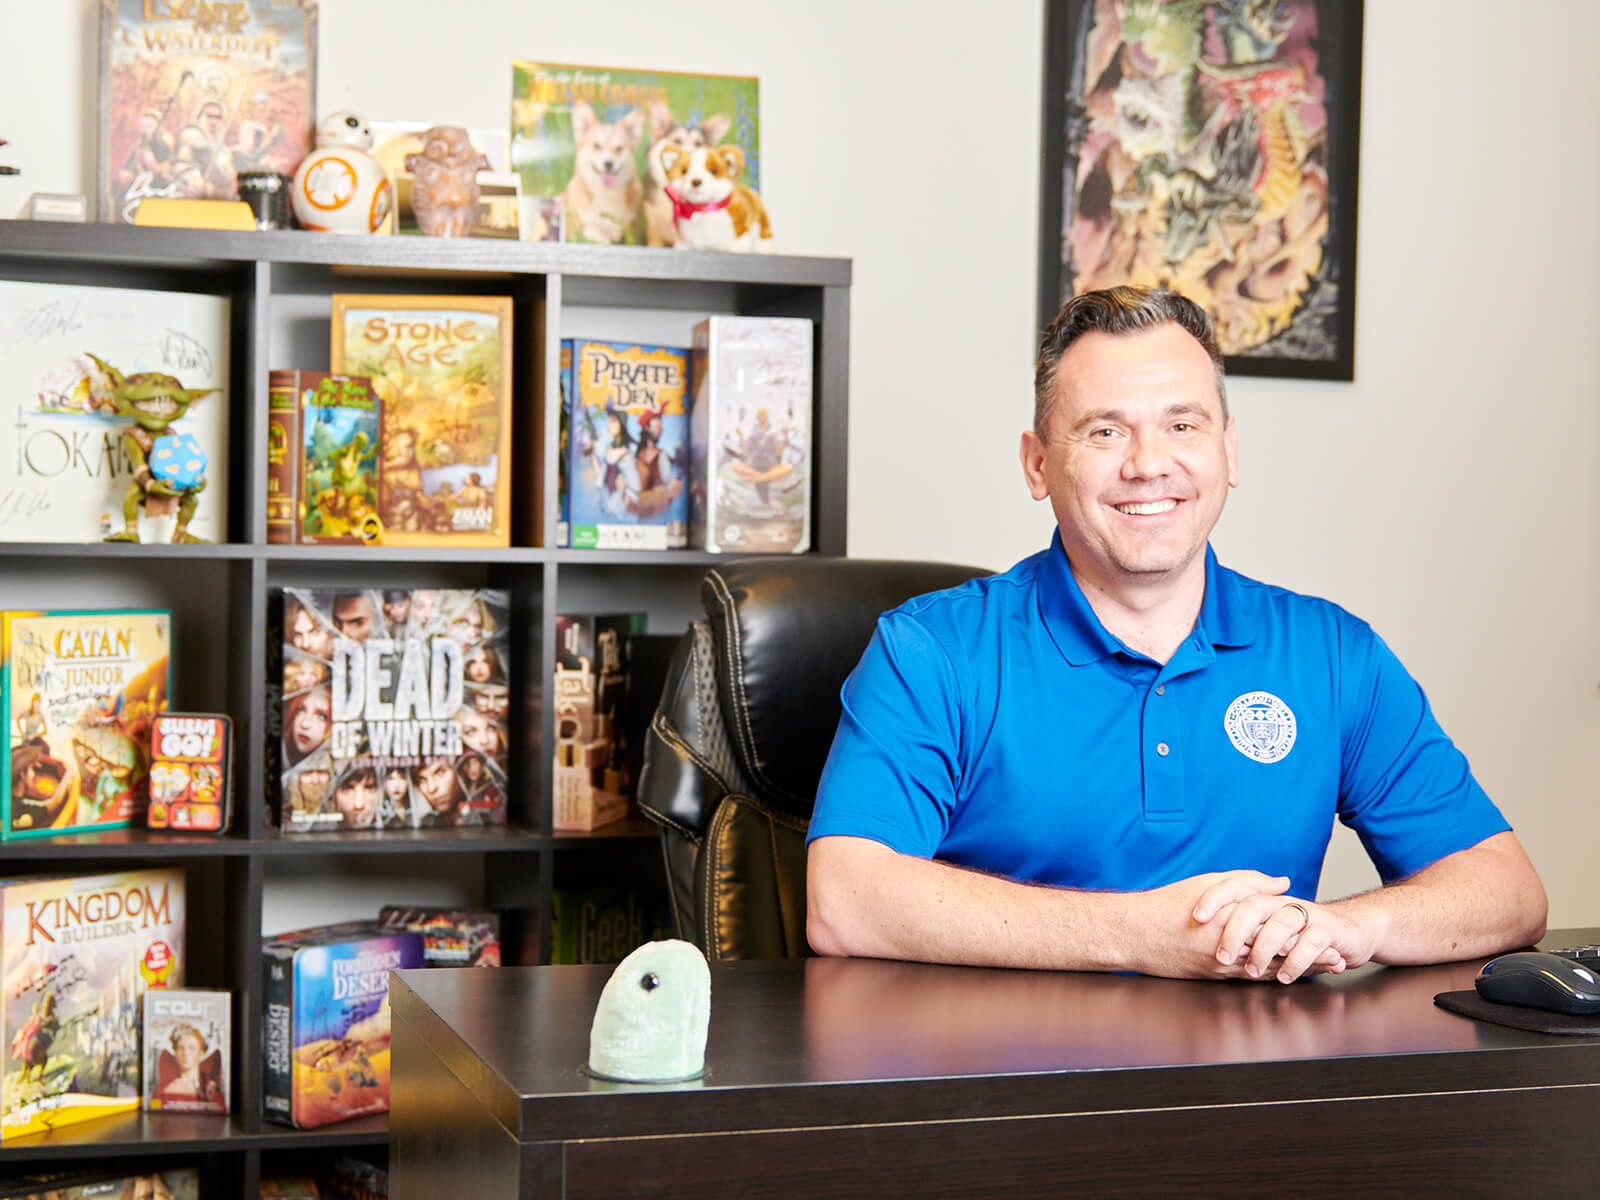 Senior game design lecturer Boyan Radakovich smiles in his office full of tabletop games.